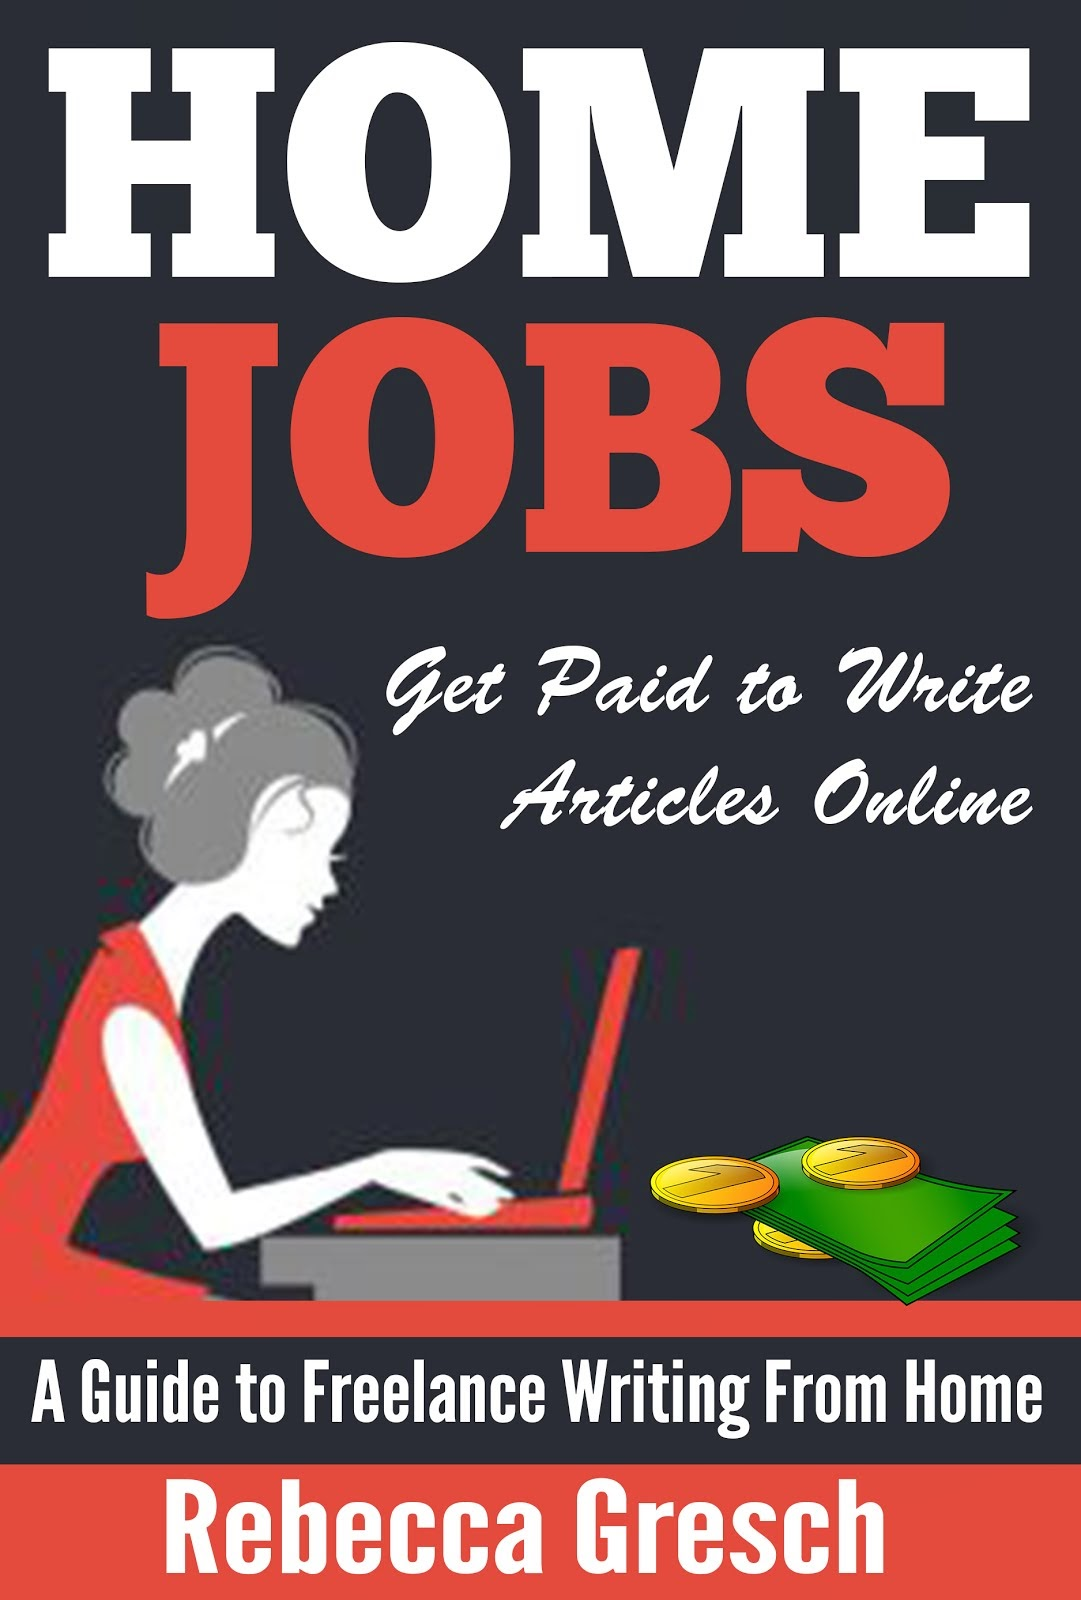 paid lance writing online ideas about write online ideas to  excellent ways life hacks extraordinaire aromatherapy appetite home jobs get paid to write articles online